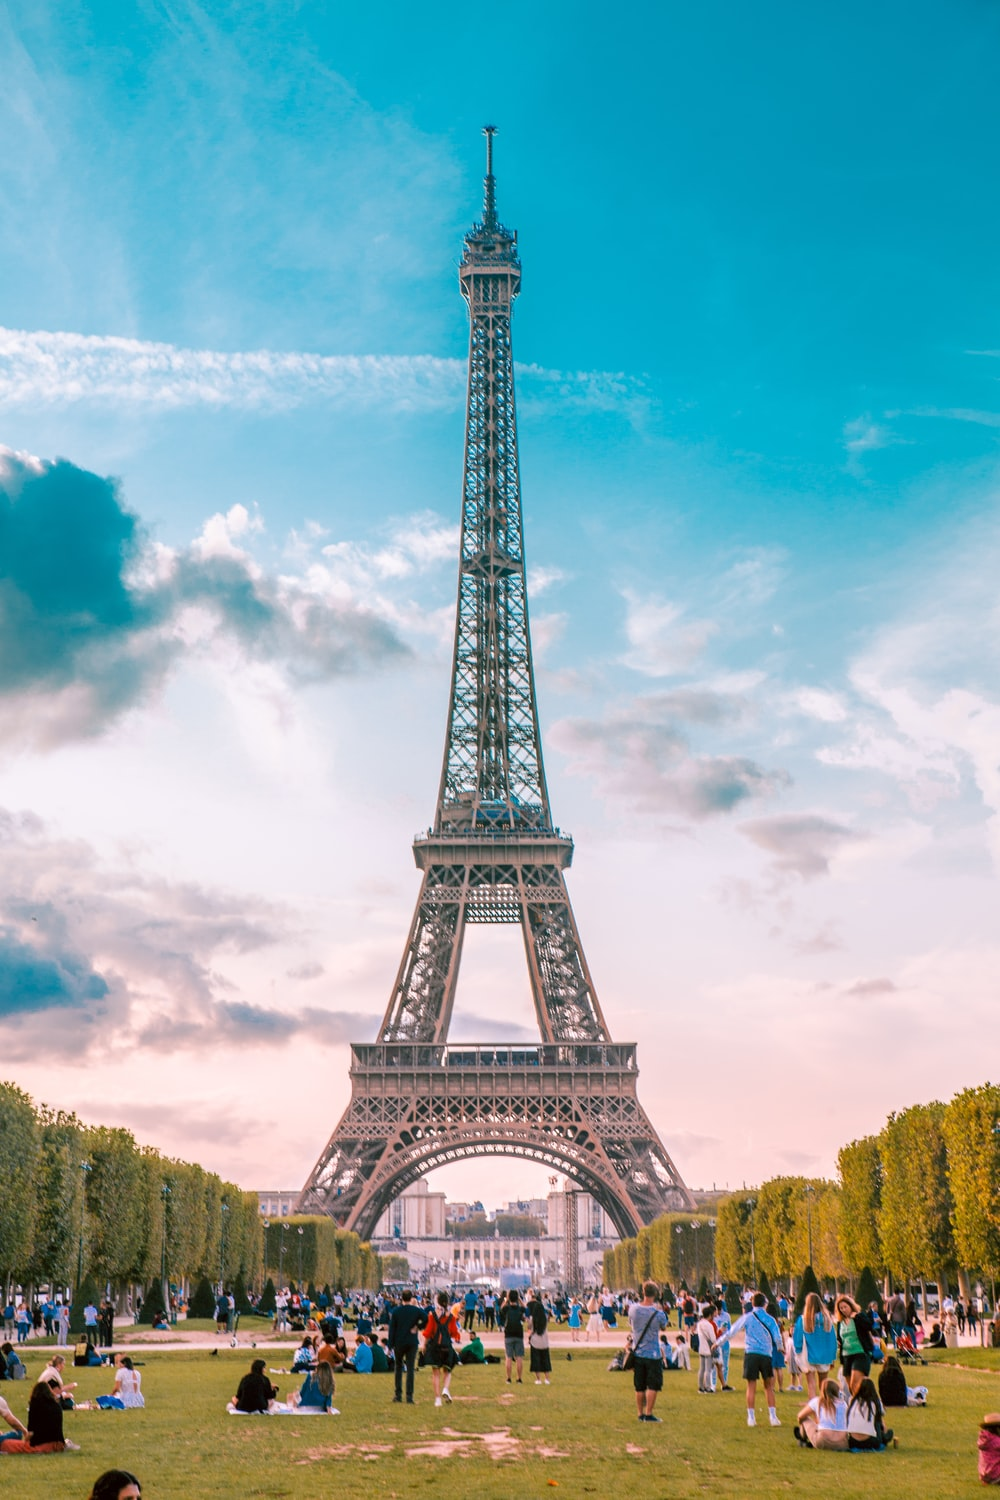 close-up photography of people near Eiffel Tower, Paris